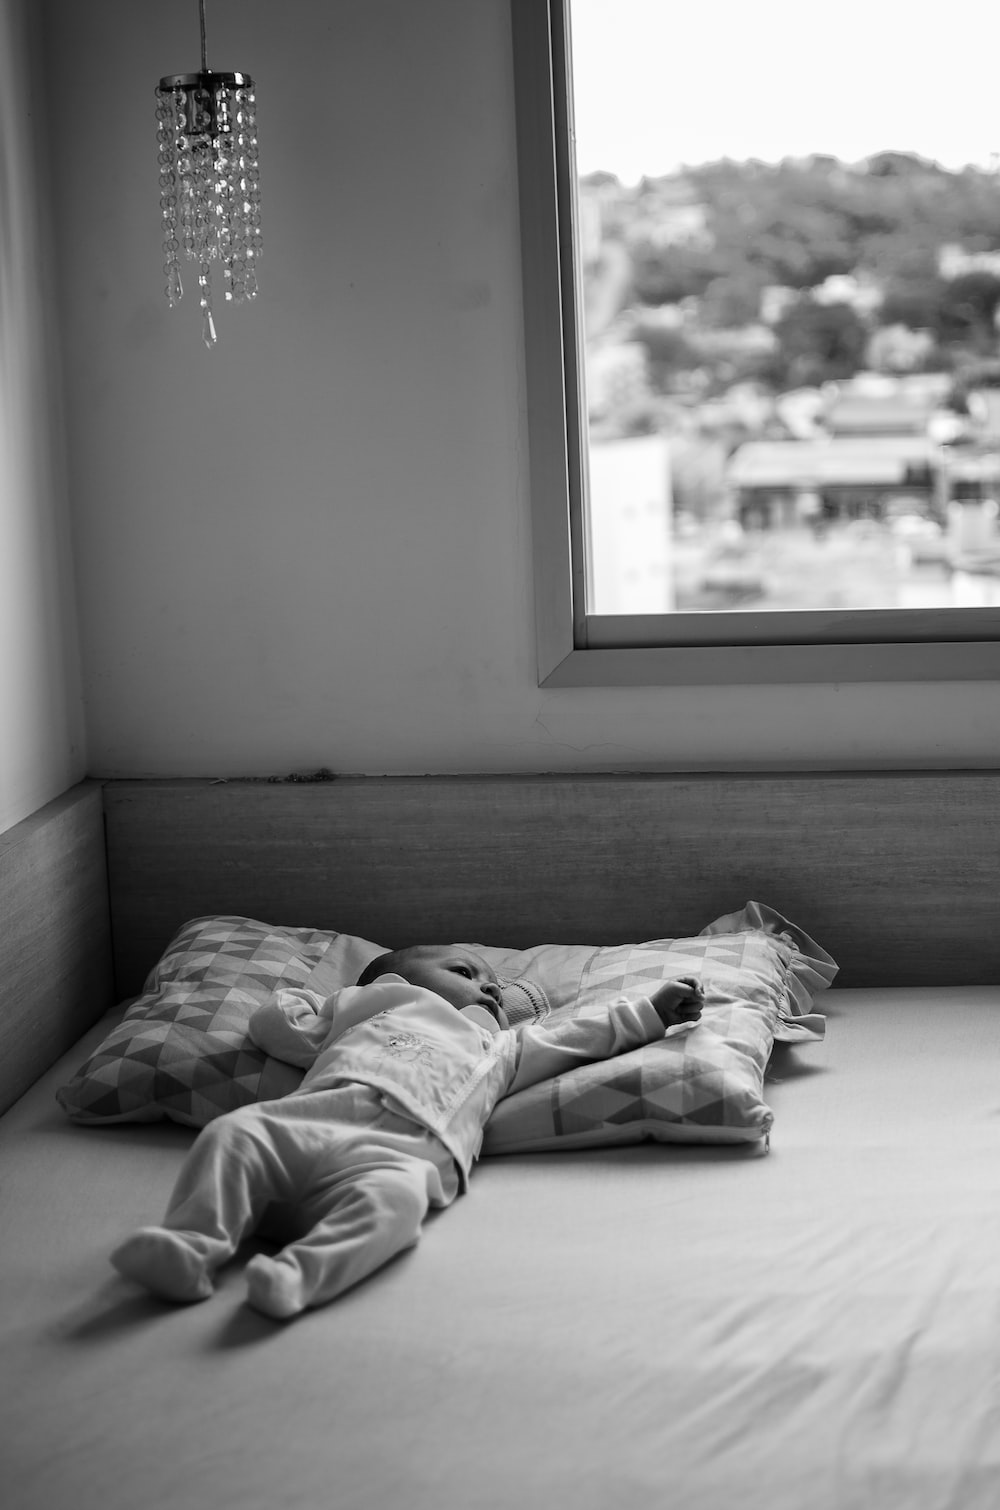 grayscale photo of person lying on bed